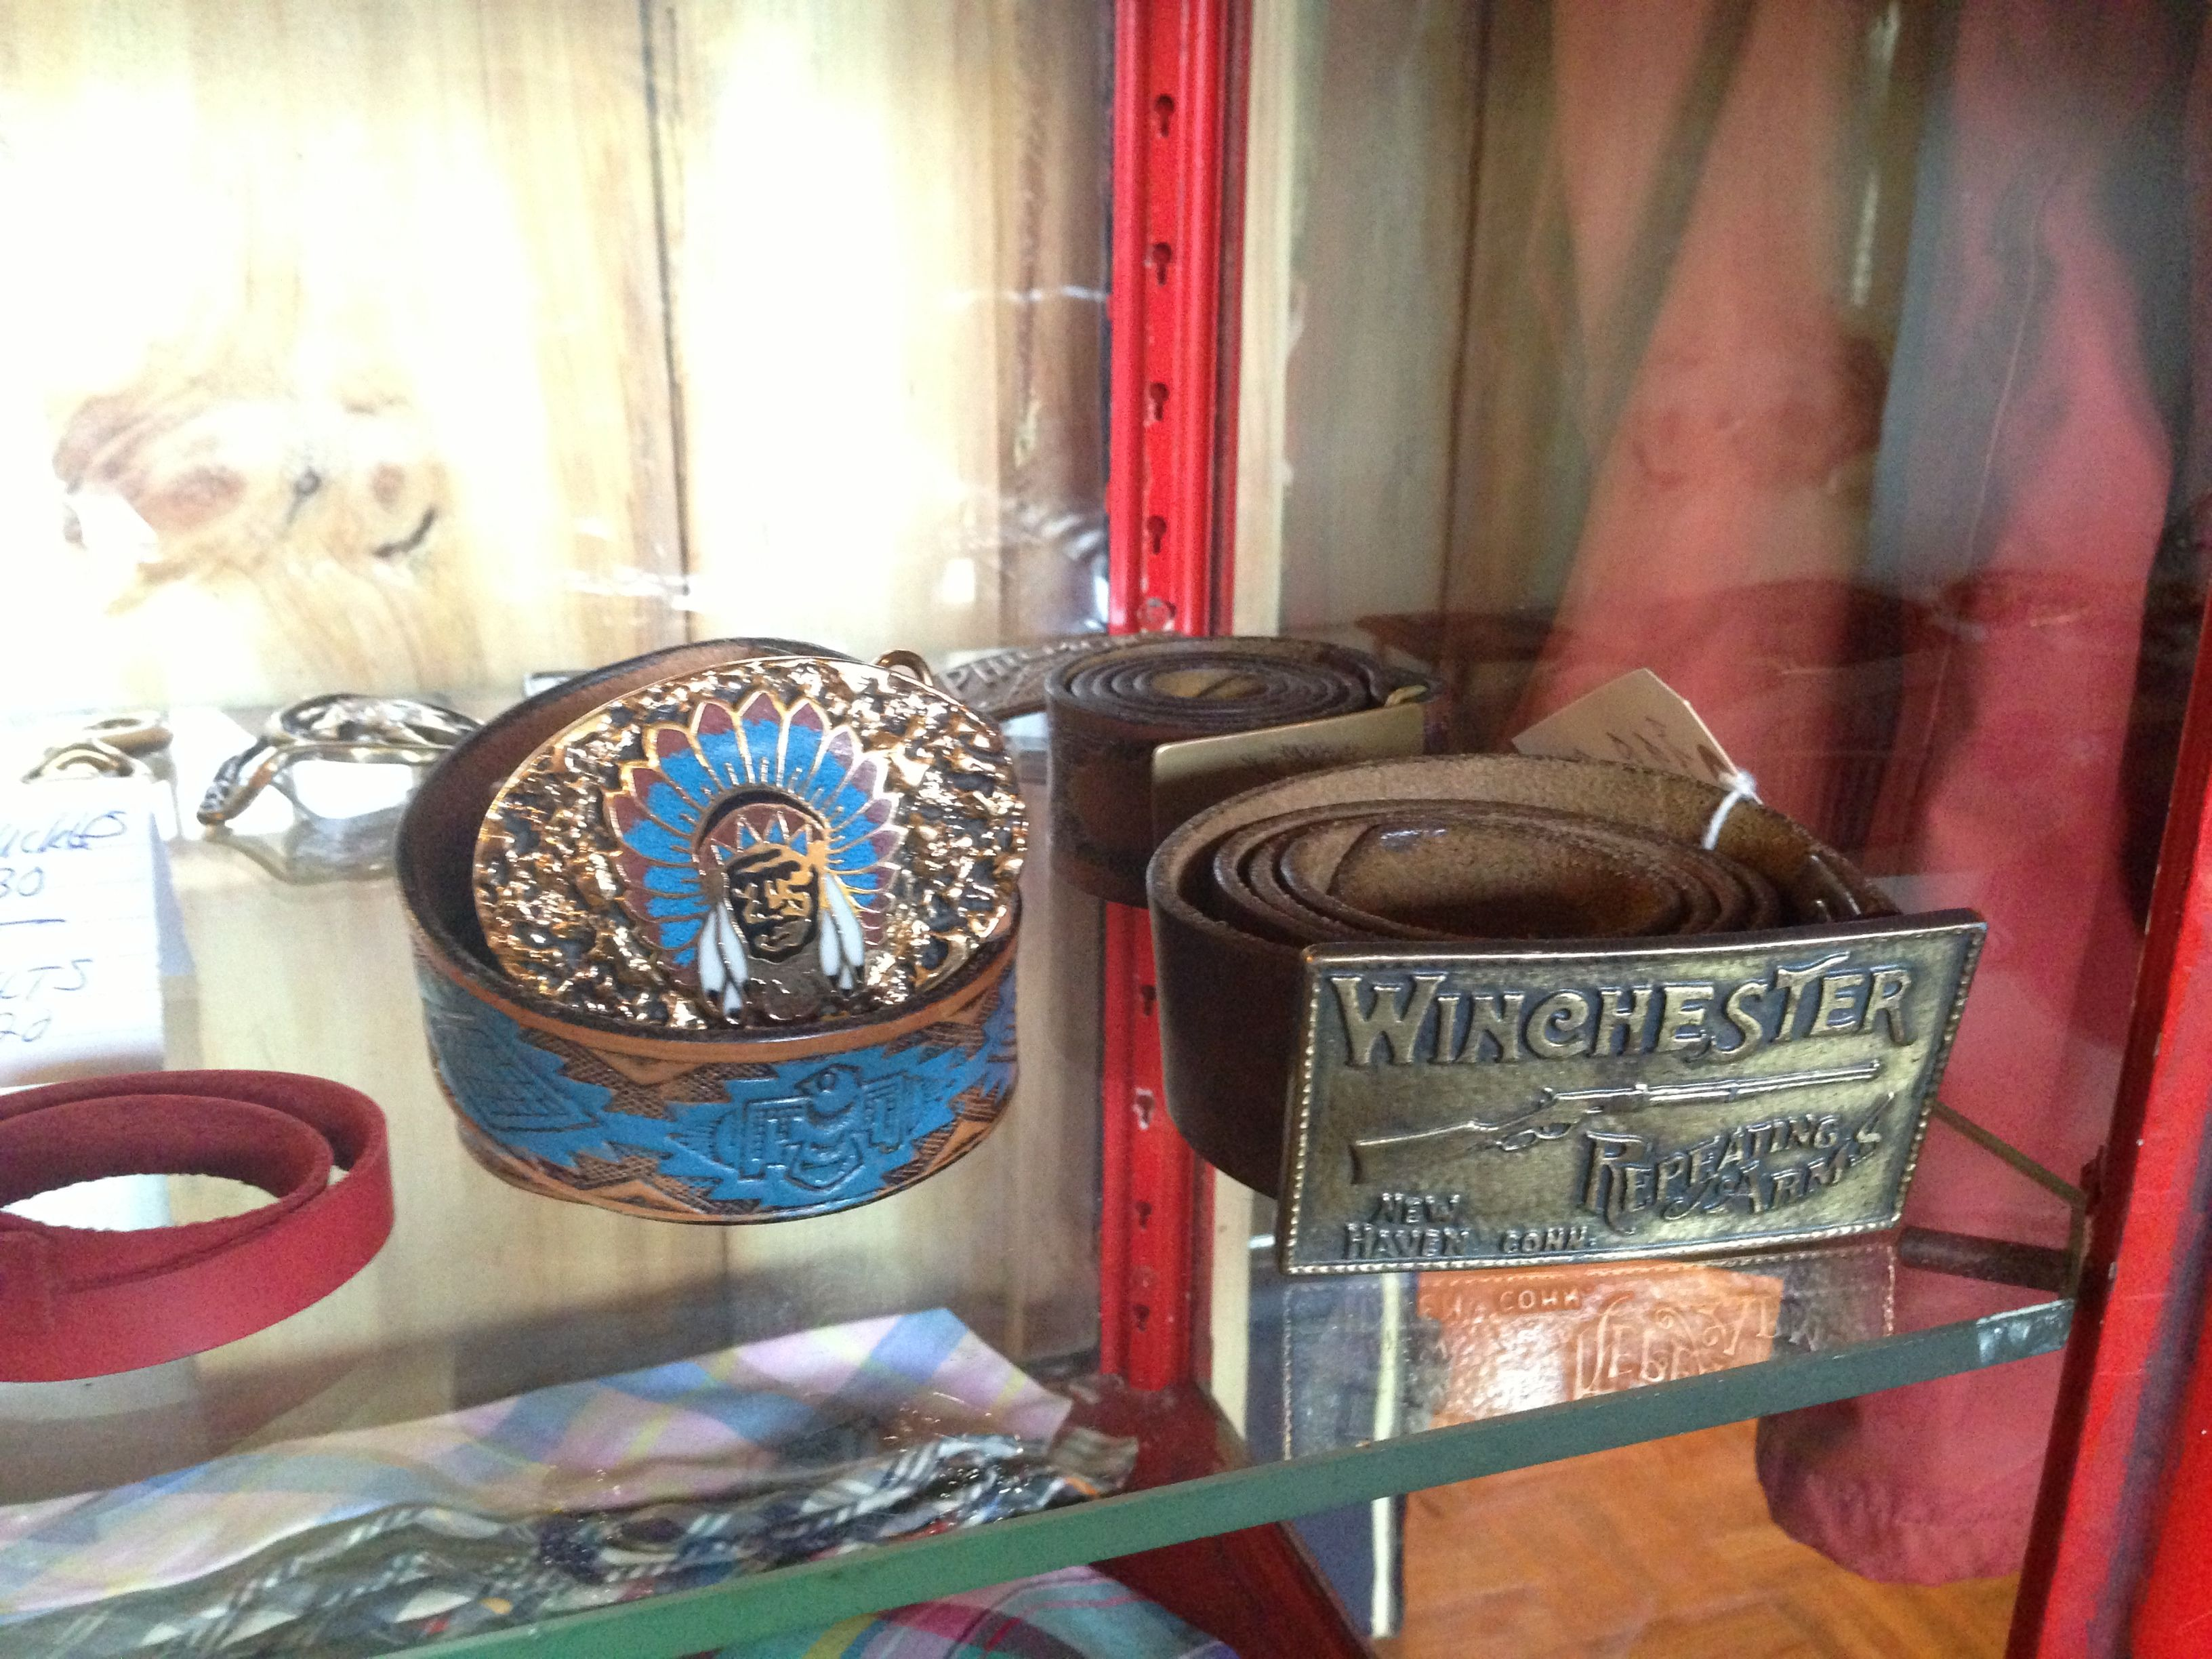 Western and other great belts and buckles to complete your look.